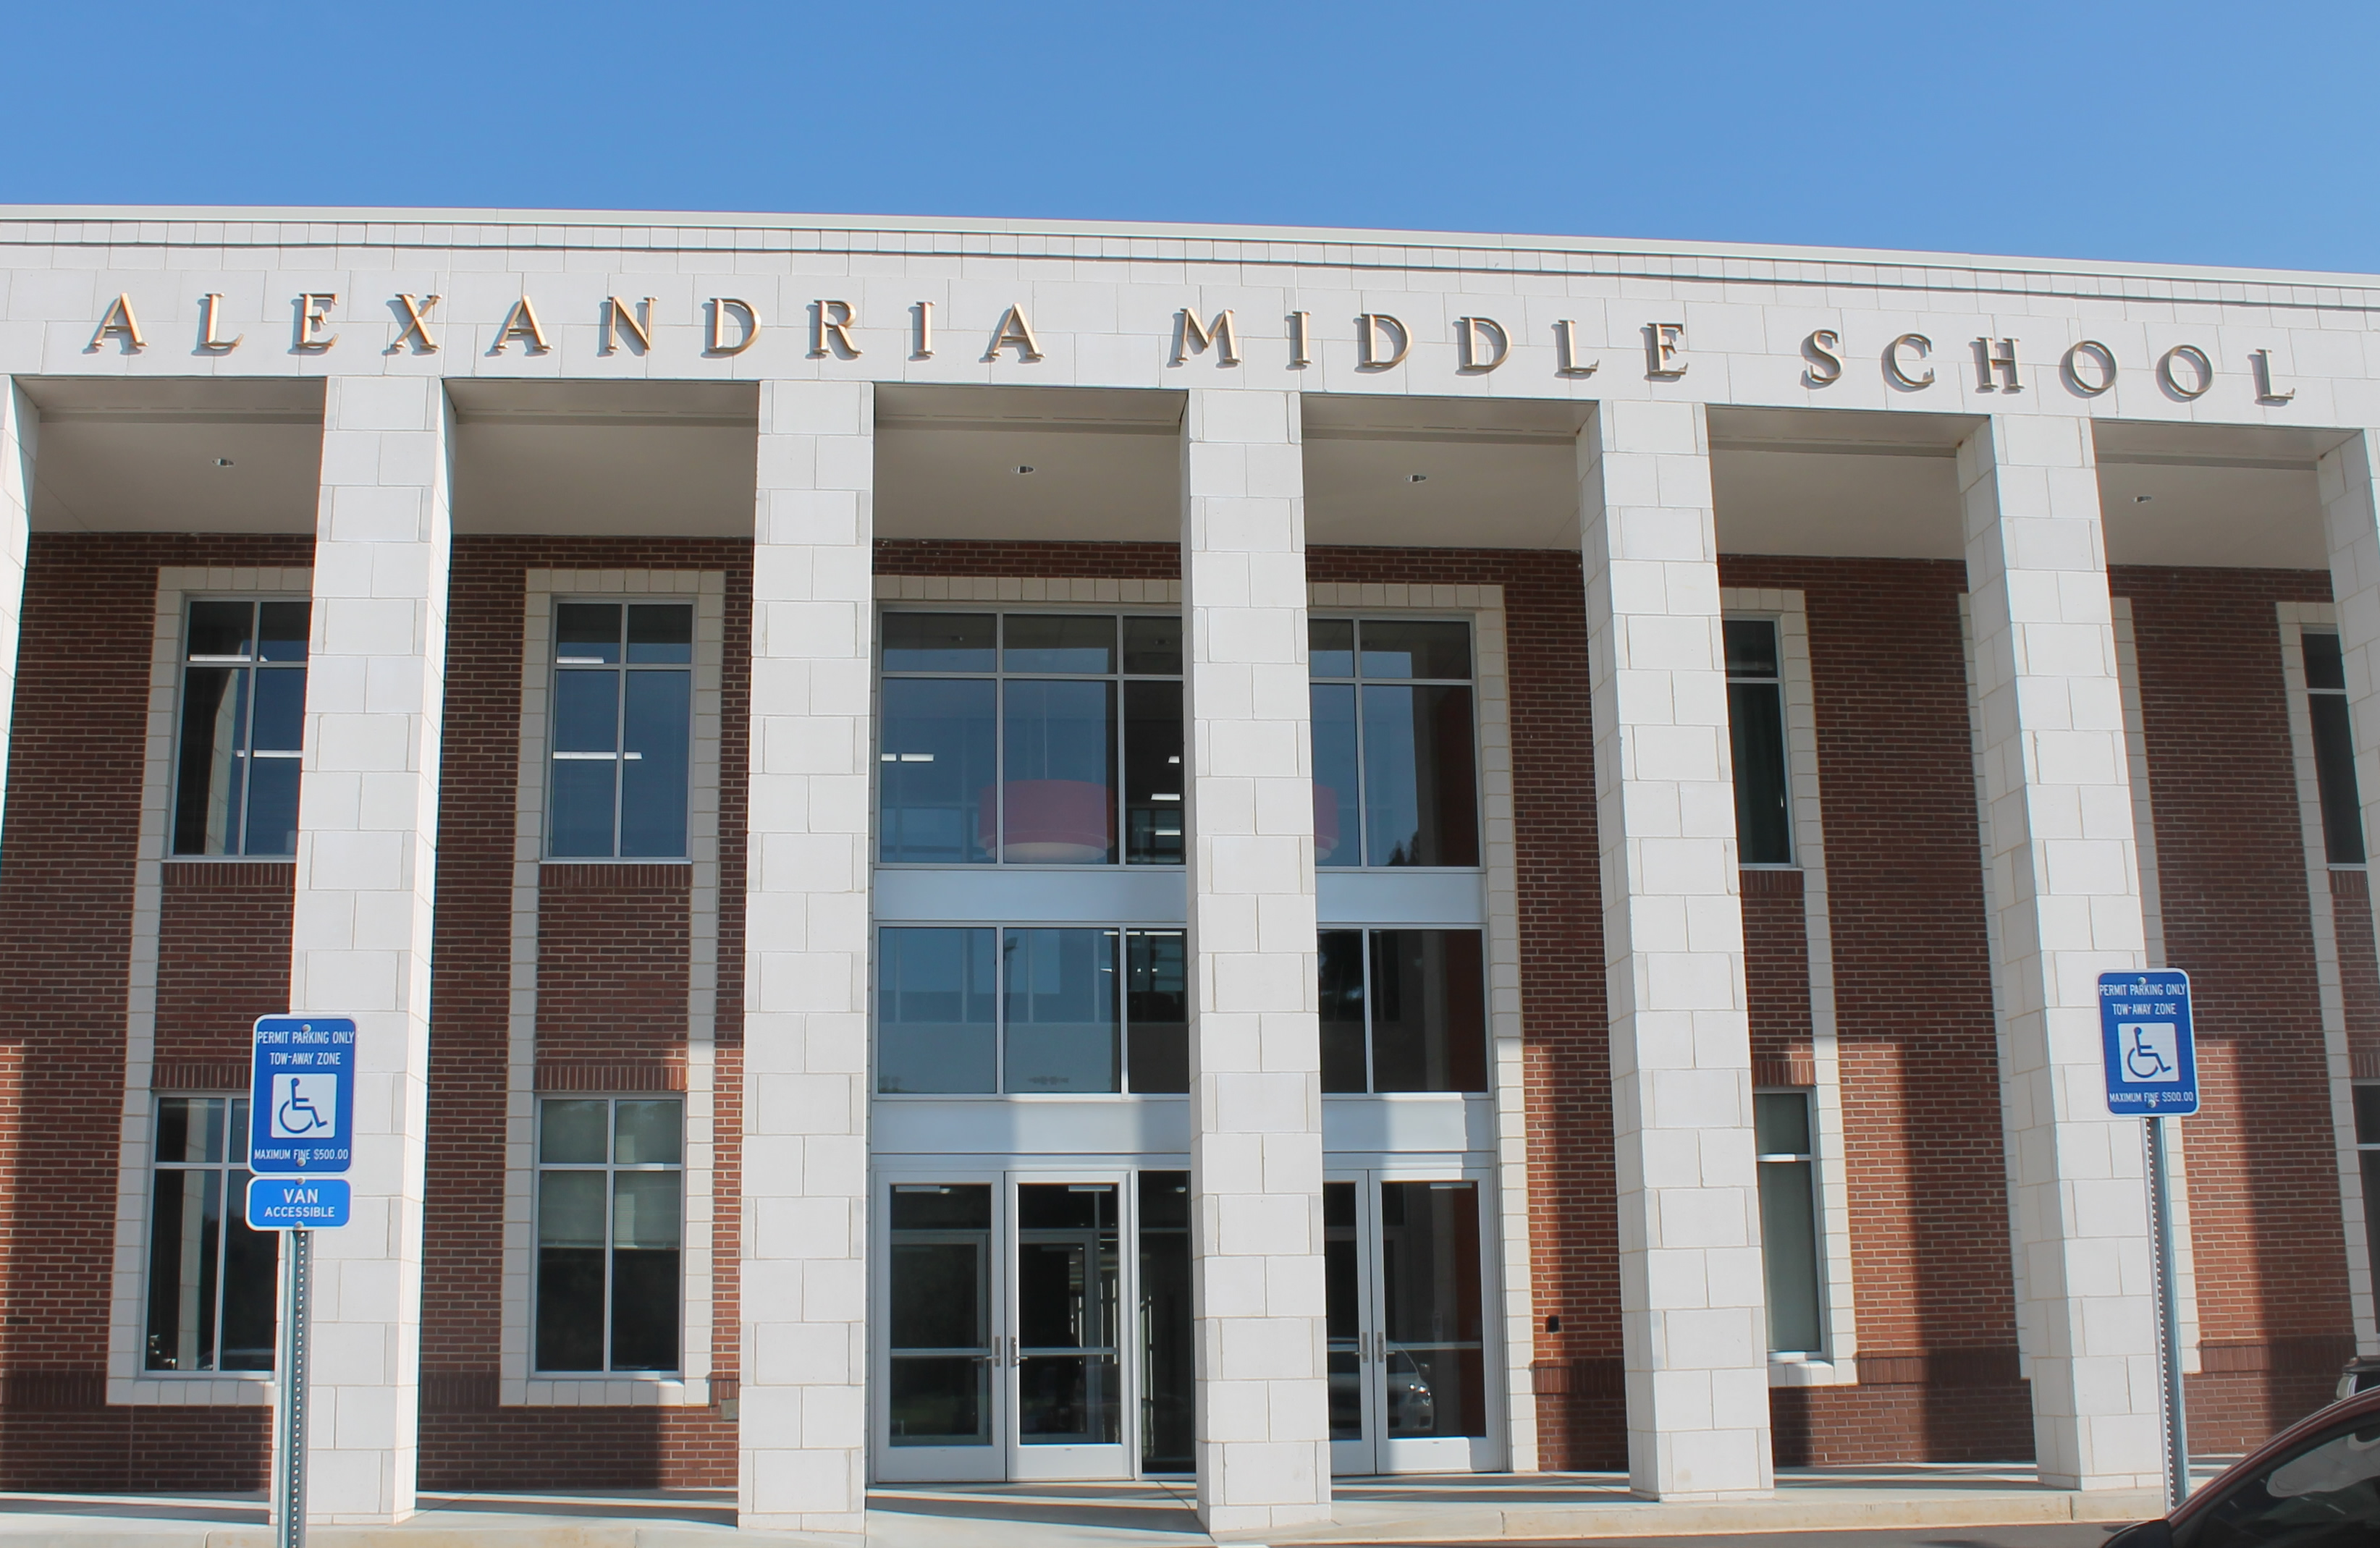 Alexandria Middle School Main Entrance